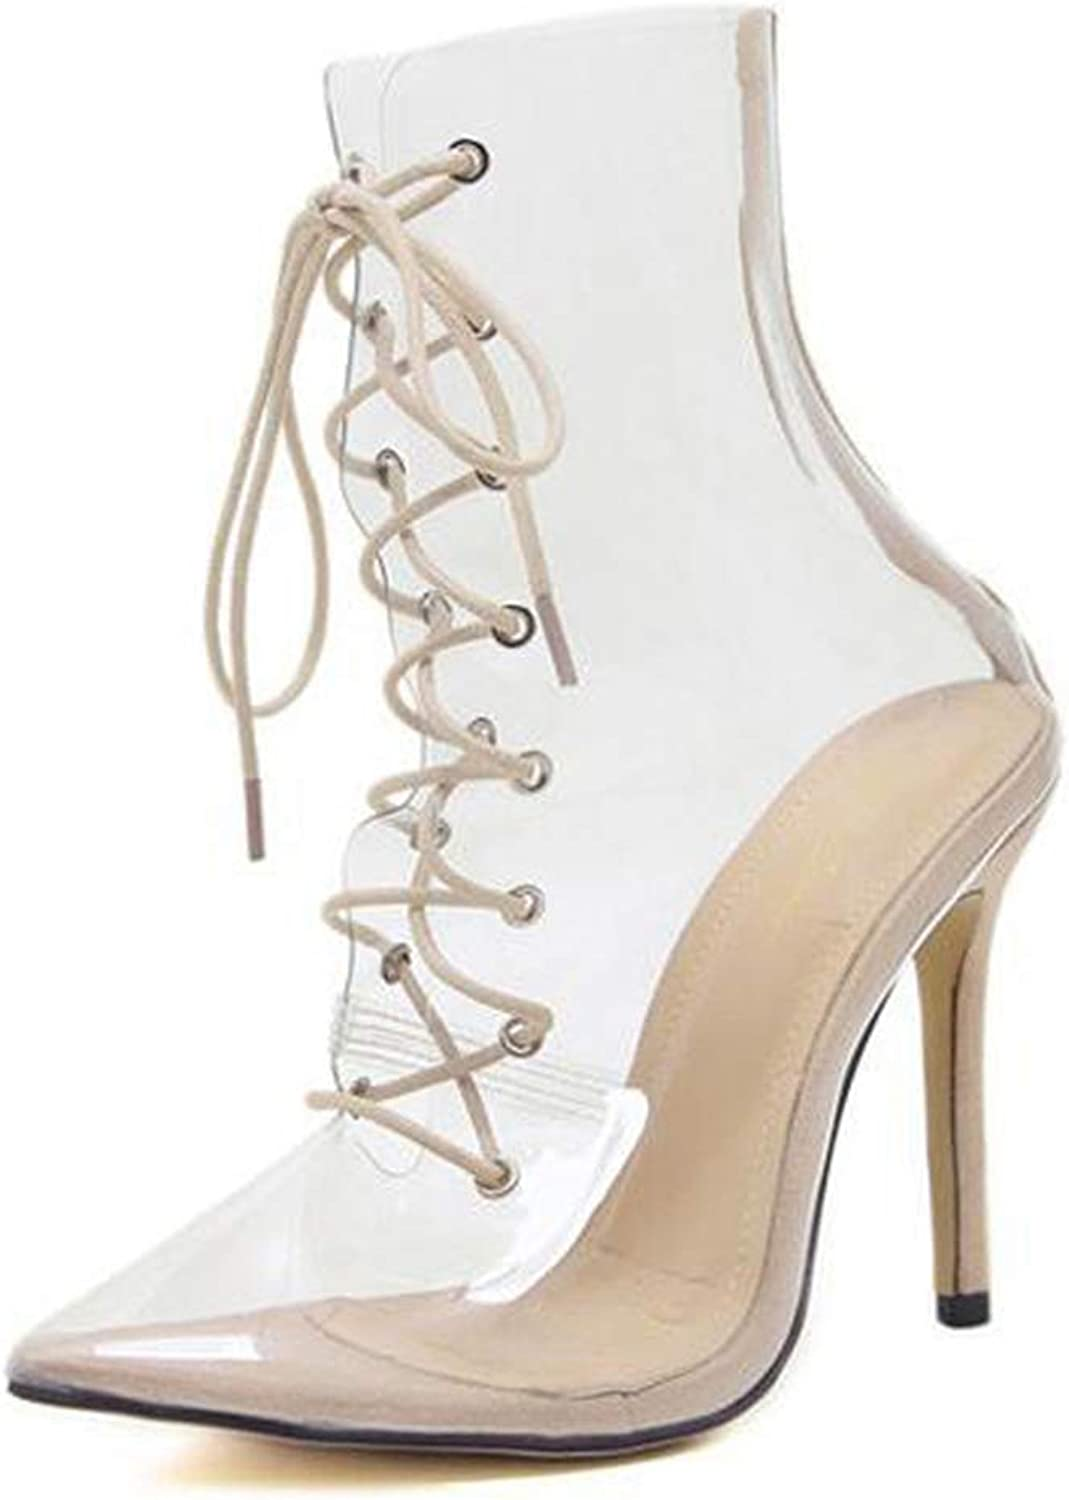 T-JULY Summer Autumn Women Mid Calf High Heels Boots Transparent Pointed Toe Cross Tie Sexy shoes